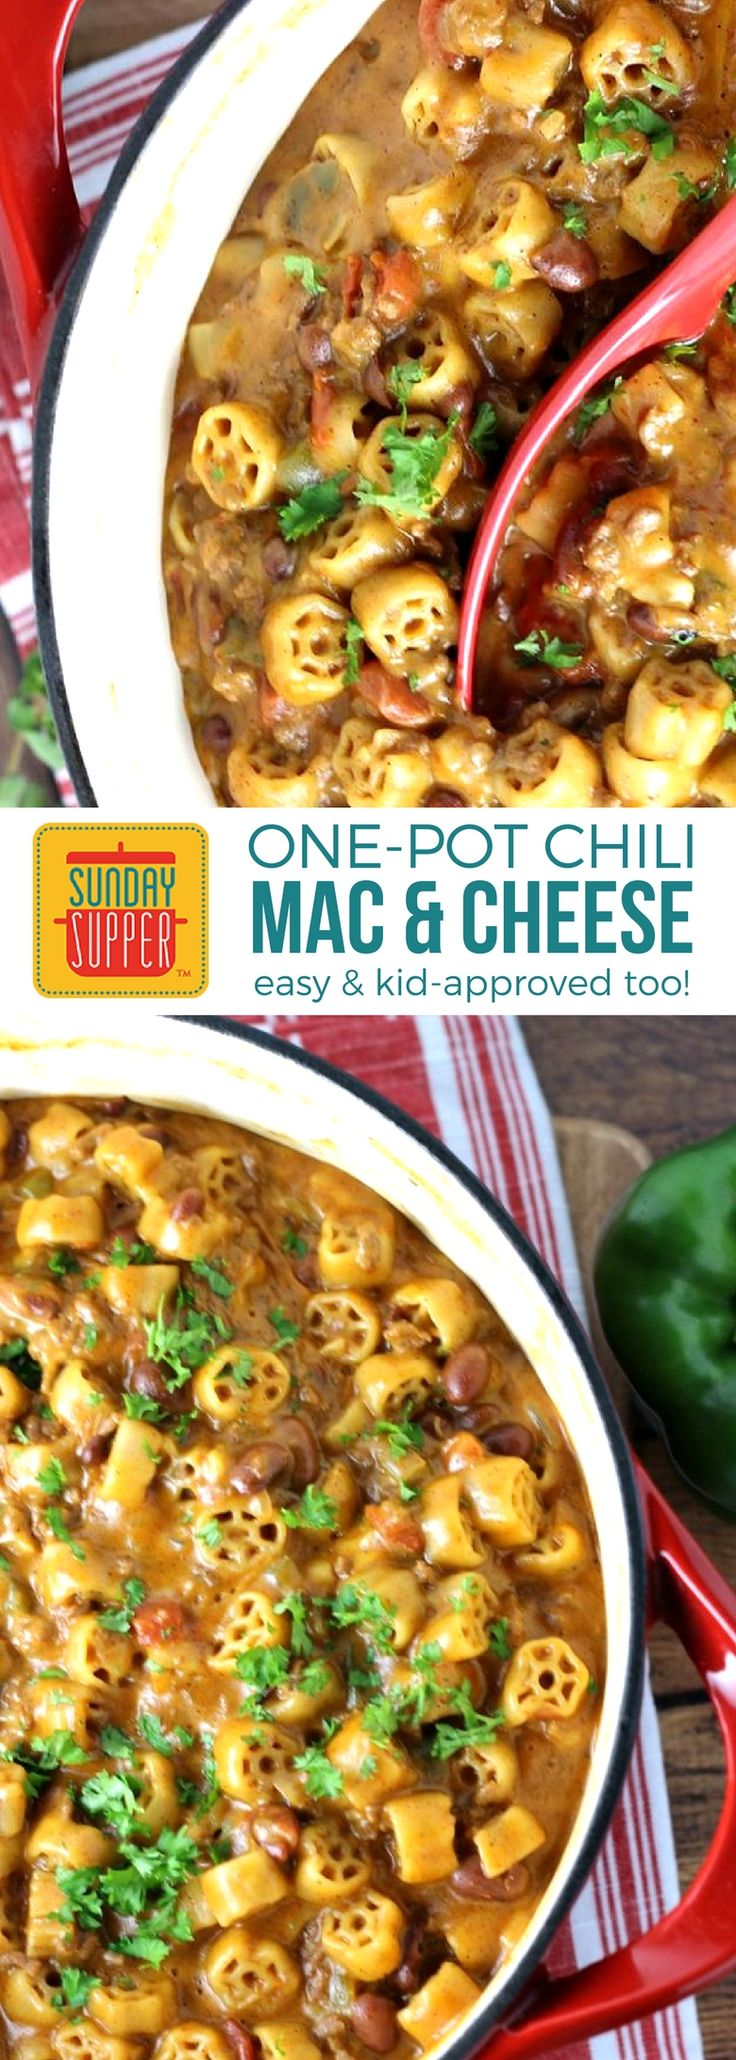 Back to school just got easier thanks to our One Pot Chili Mac and Cheese. A favorite Sunday Supper recipe that is also one of our top hot lunch ideas! One Pot Chili Mac and Cheese recipe is full of bold chili flavors, beef, pasta and lots of gooey cheese. But, most importantly, it's a dinner recipe ready in no time with minimal clean up